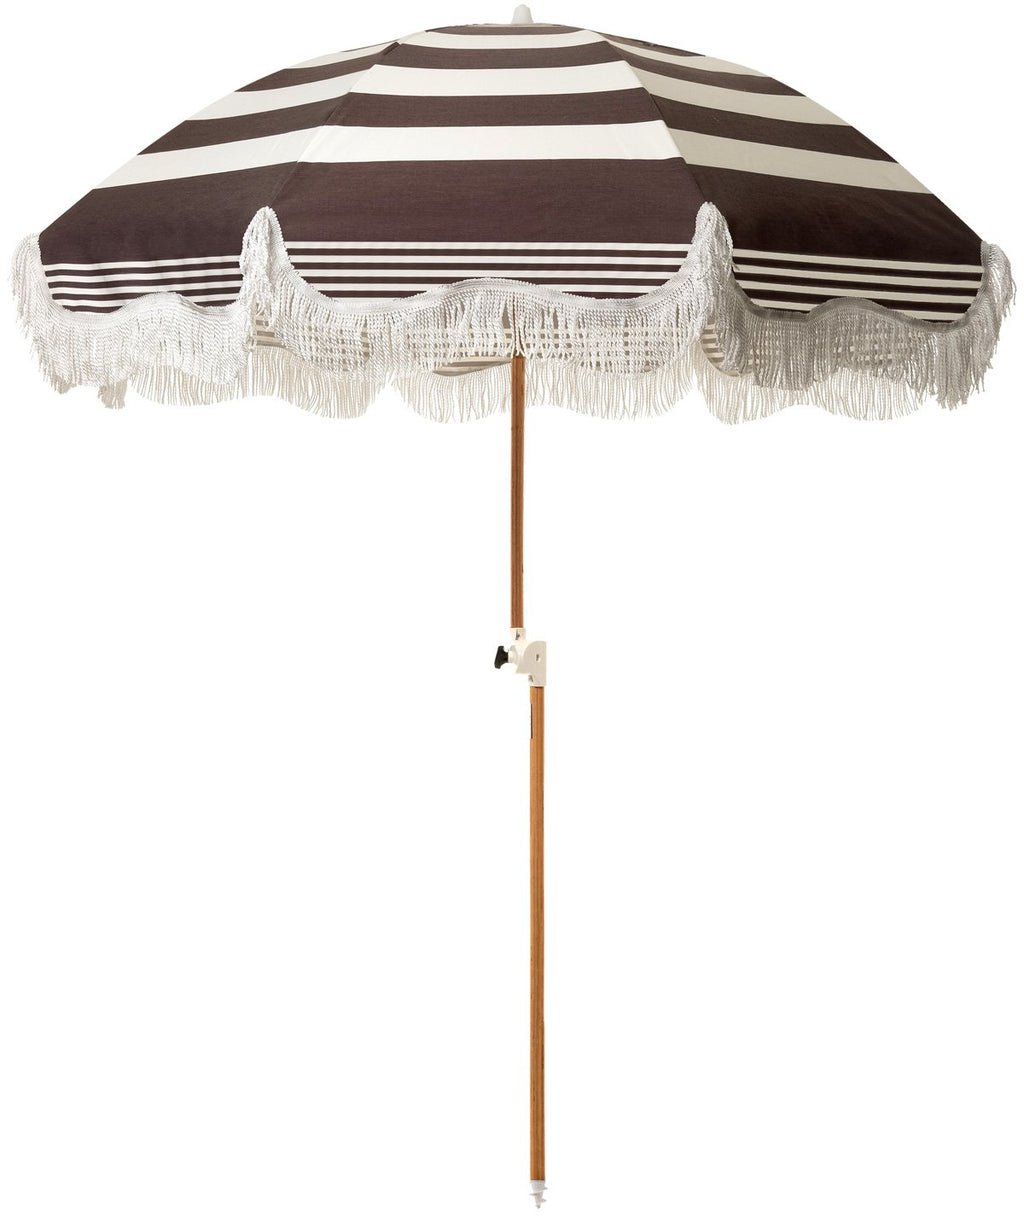 The Holiday Beach Umbrella - Black Riviera Stripe - Business & Pleasure Co